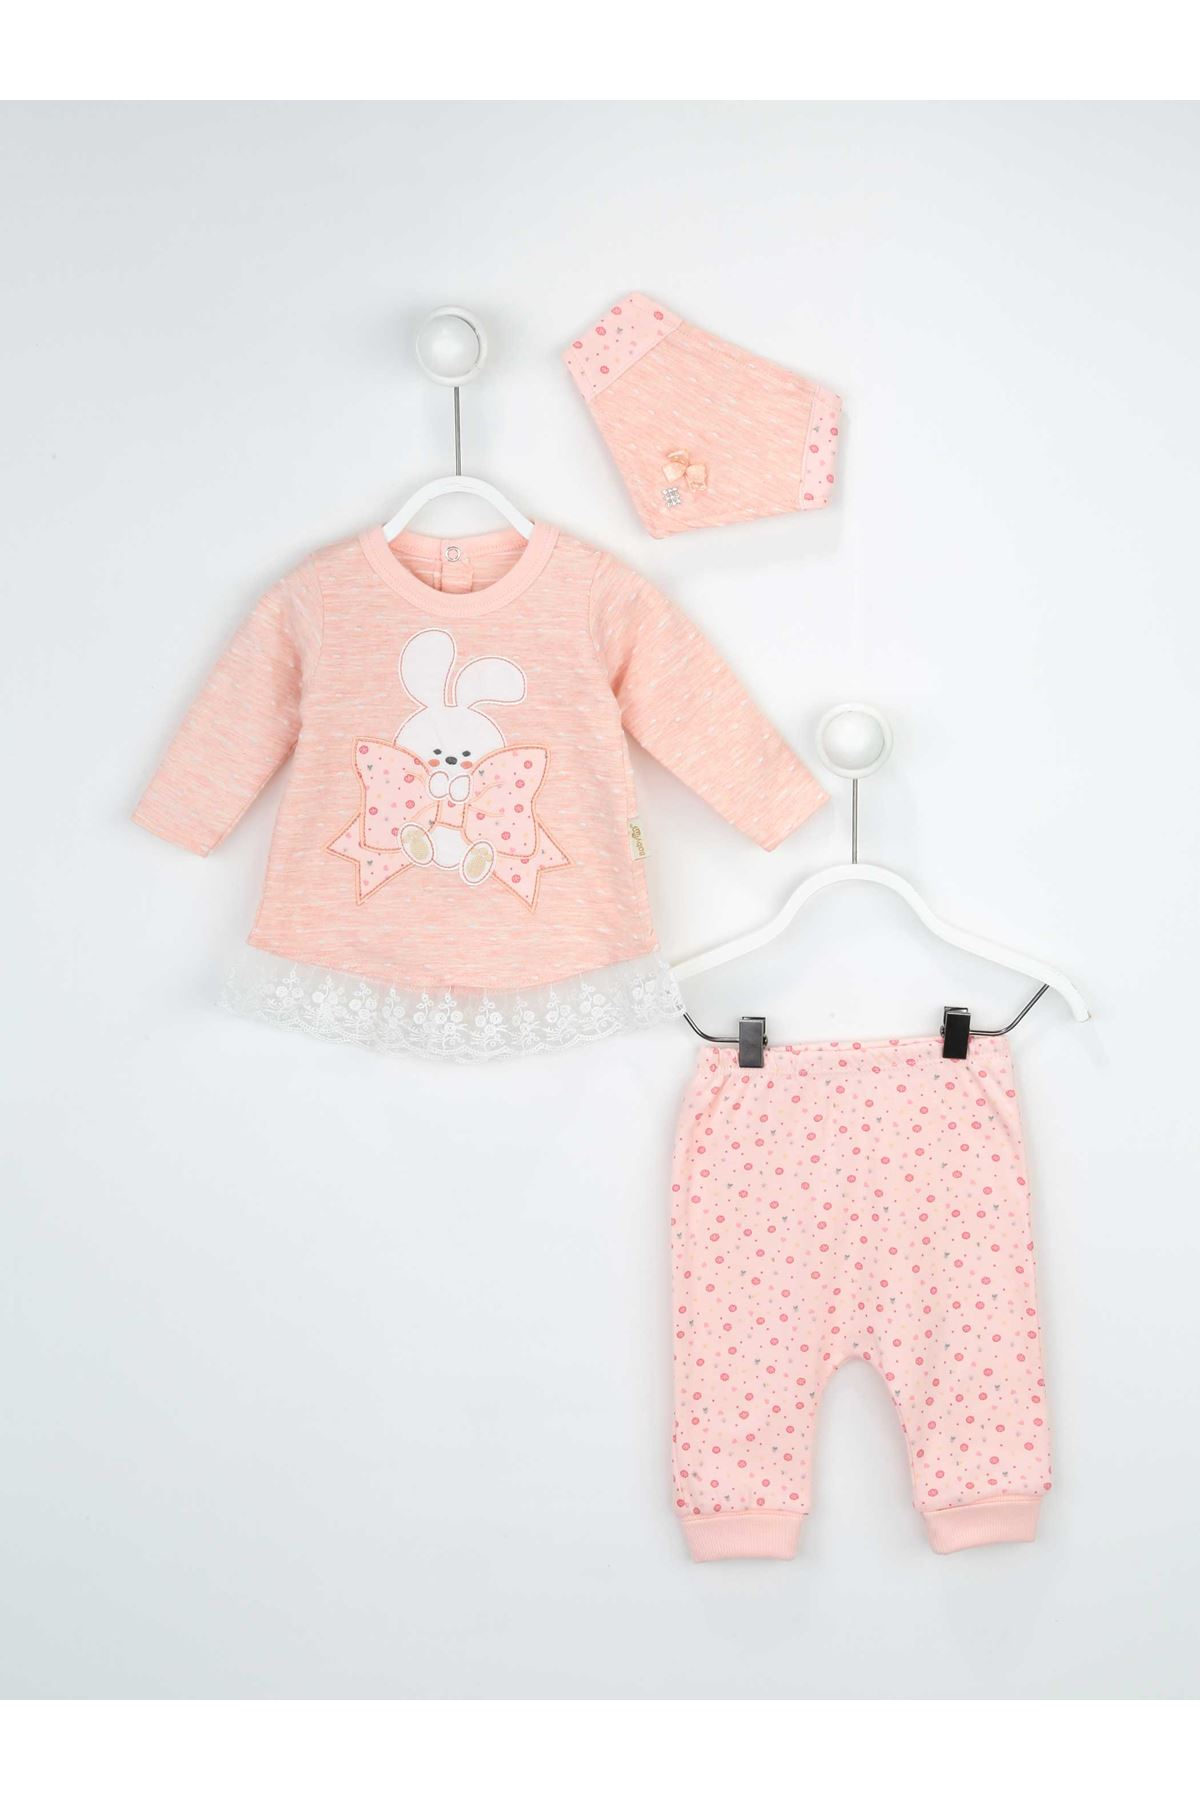 Newborn baby Girl 3 piece suit set cotton hospital Clothing out daily casual Girls Babies clothes style fashion models